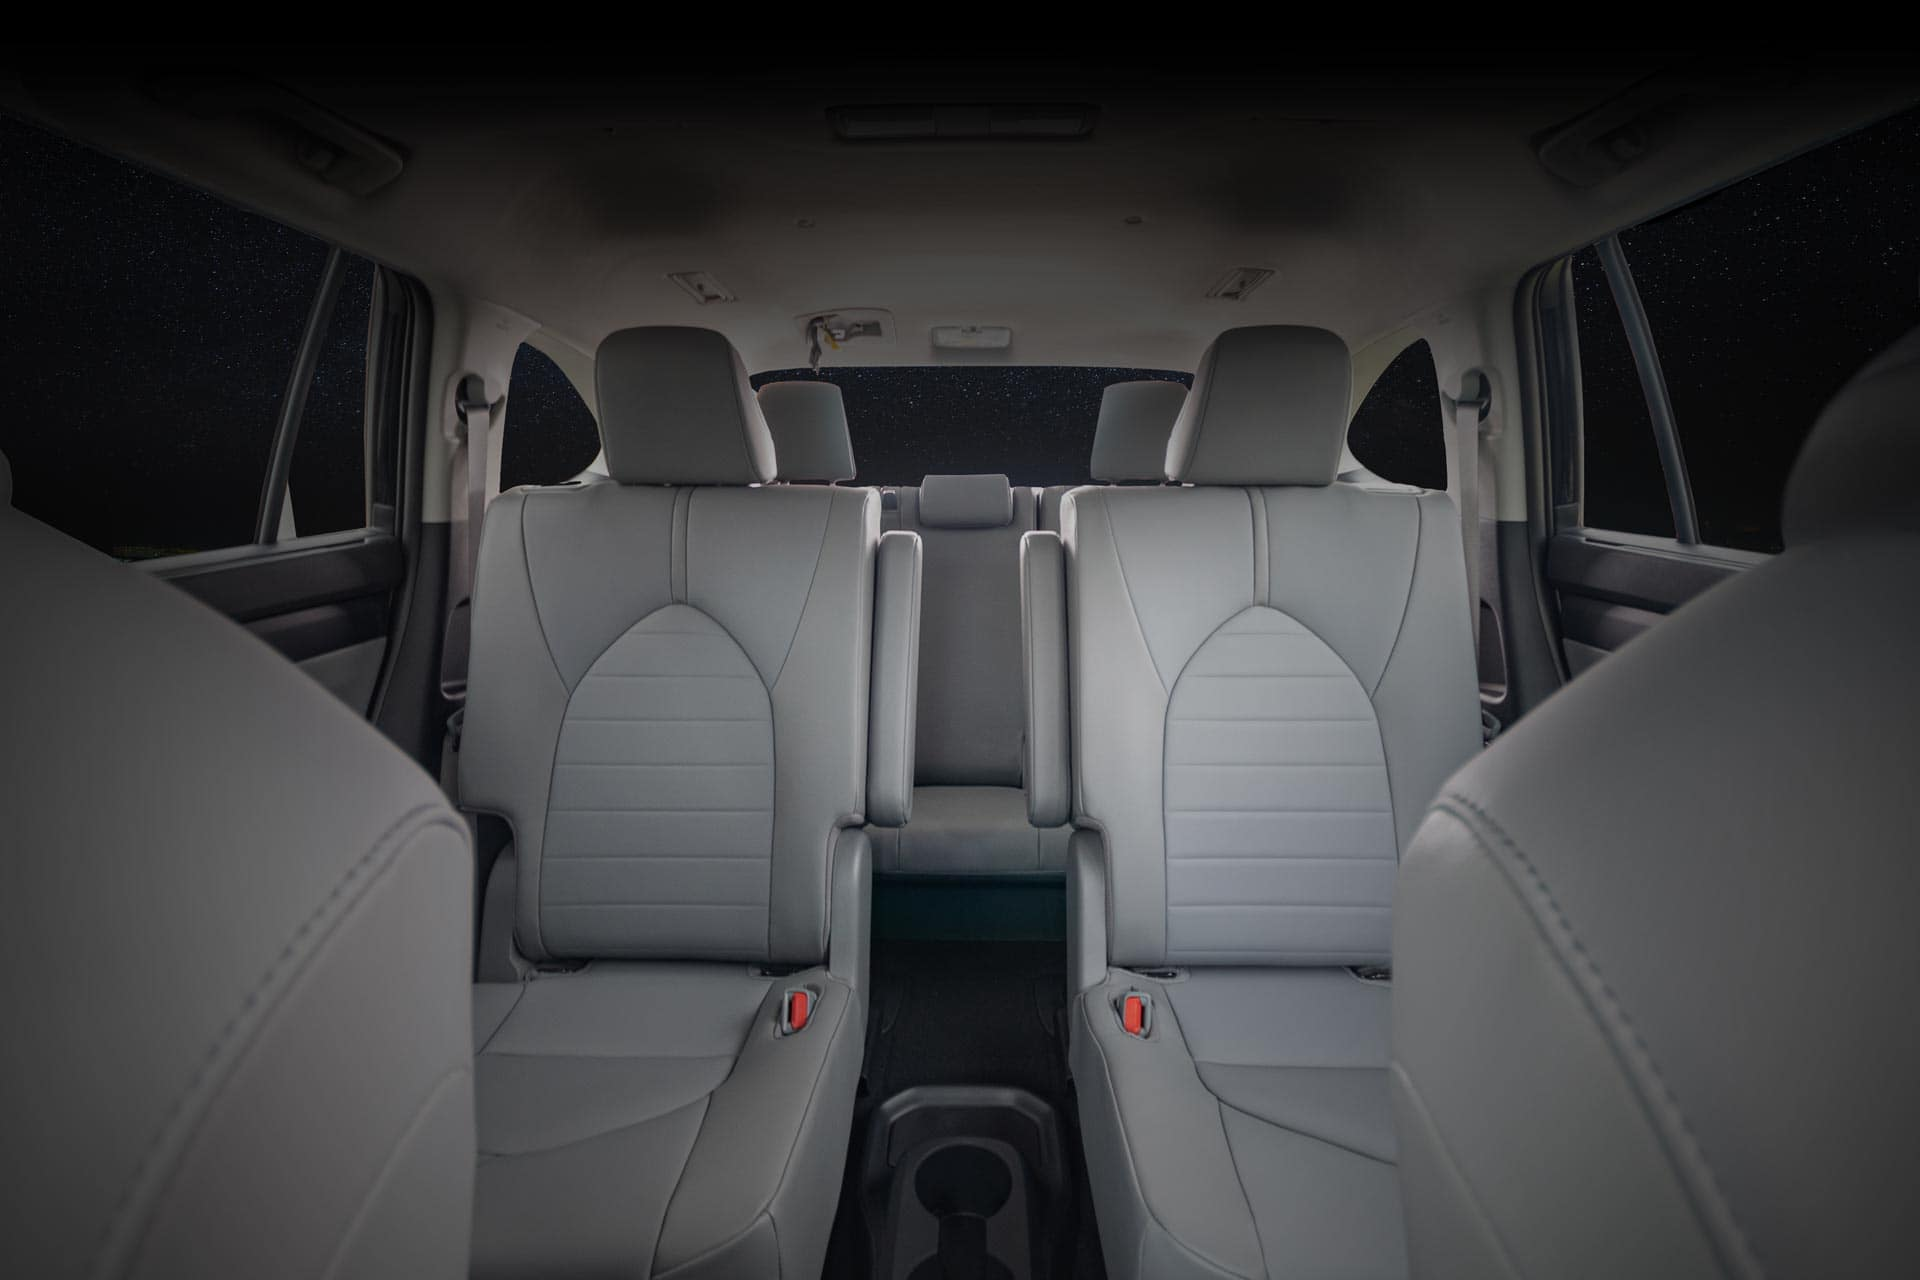 2020 Toyota Highlander three rows of seats 3rd row at Holman Automotive